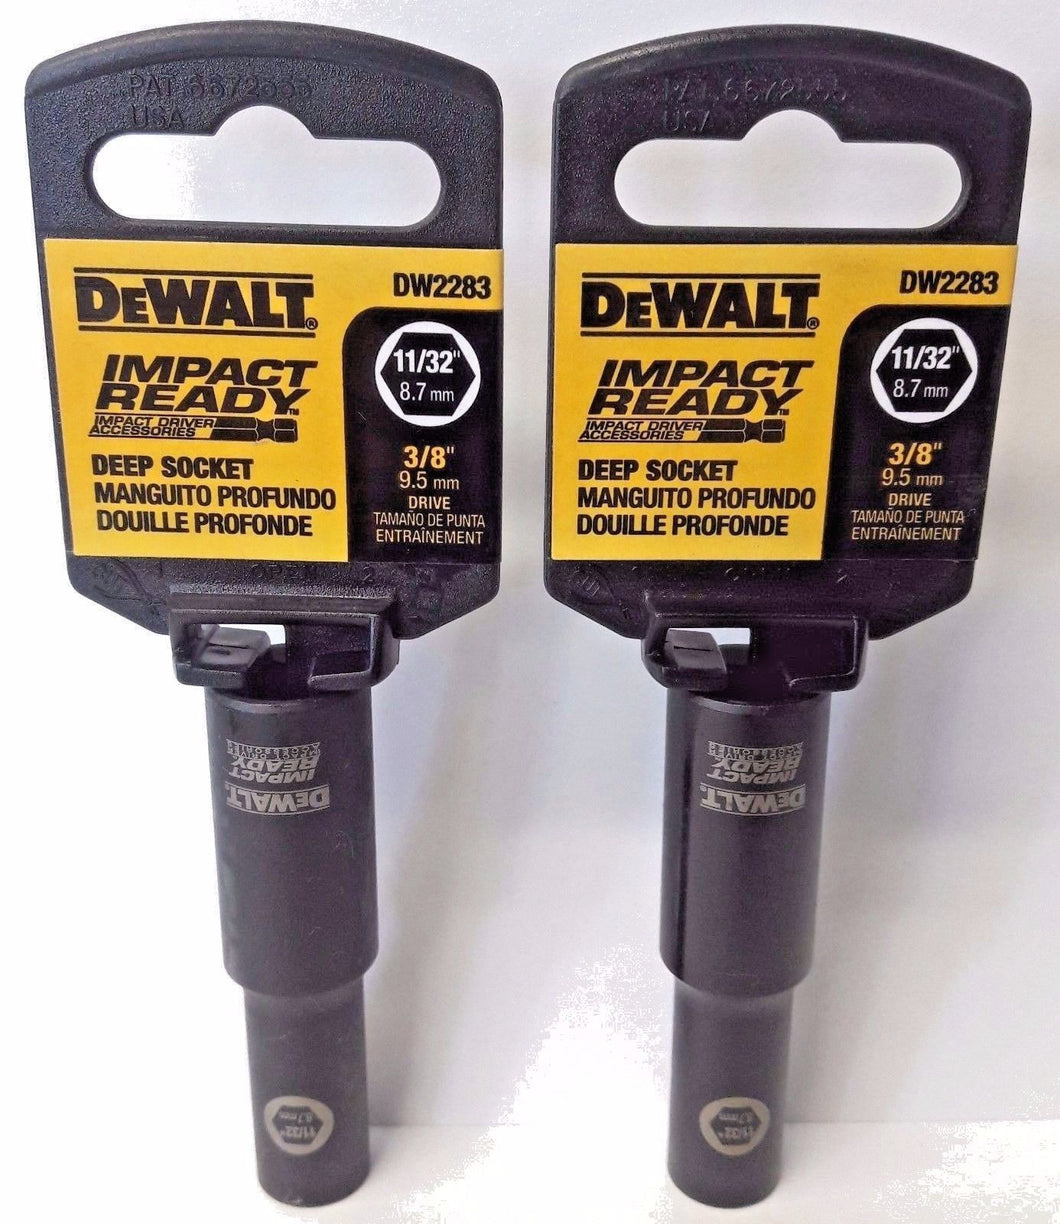 Dewalt DW2283 Impact Ready Deep Socket 11/32